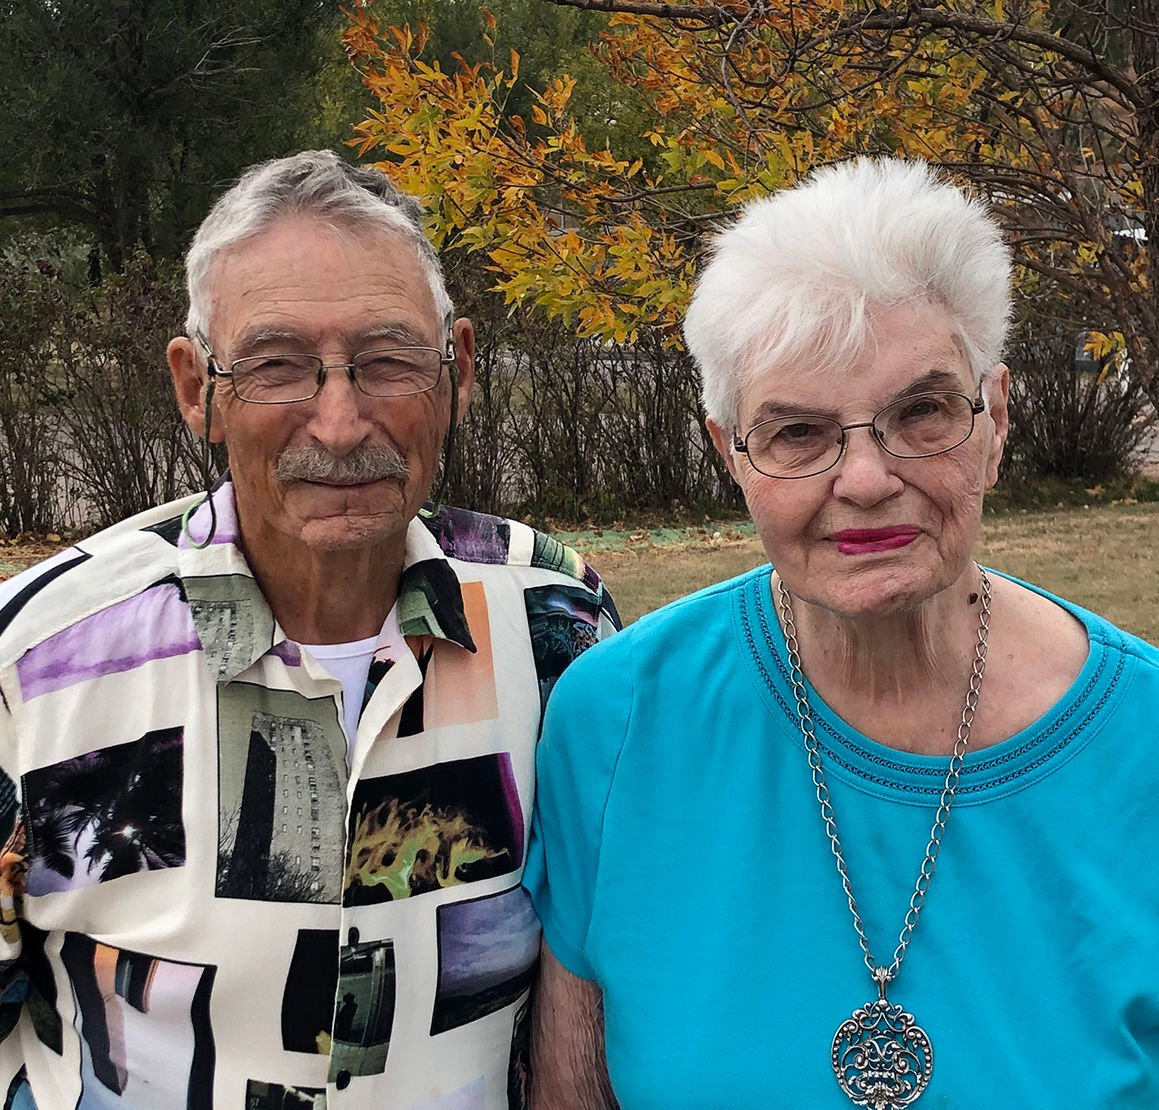 Edward and Lois Nelson